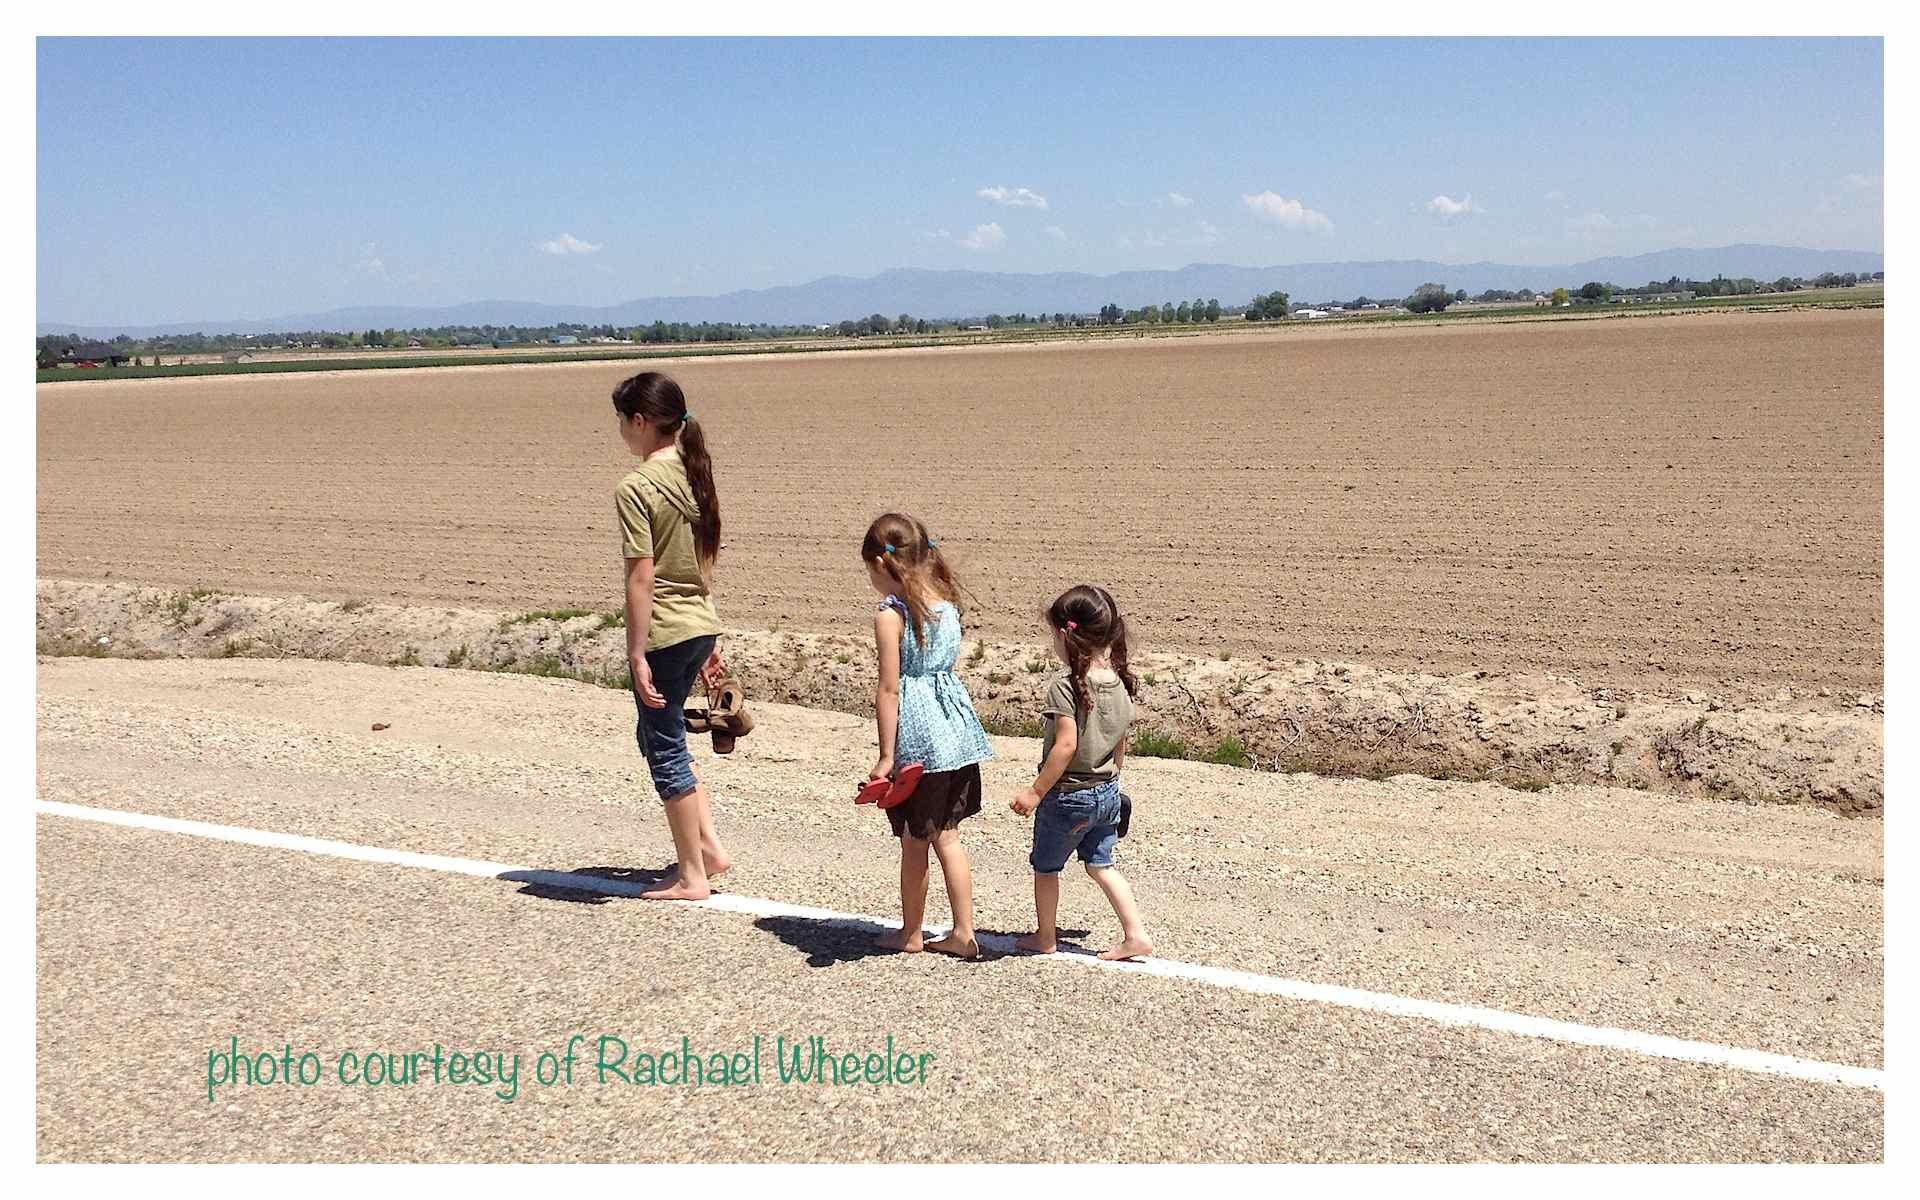 http://dailyimprovisations.com/wp-content/uploads/2014/06/barefoot-kids-on-road-backs.jpg